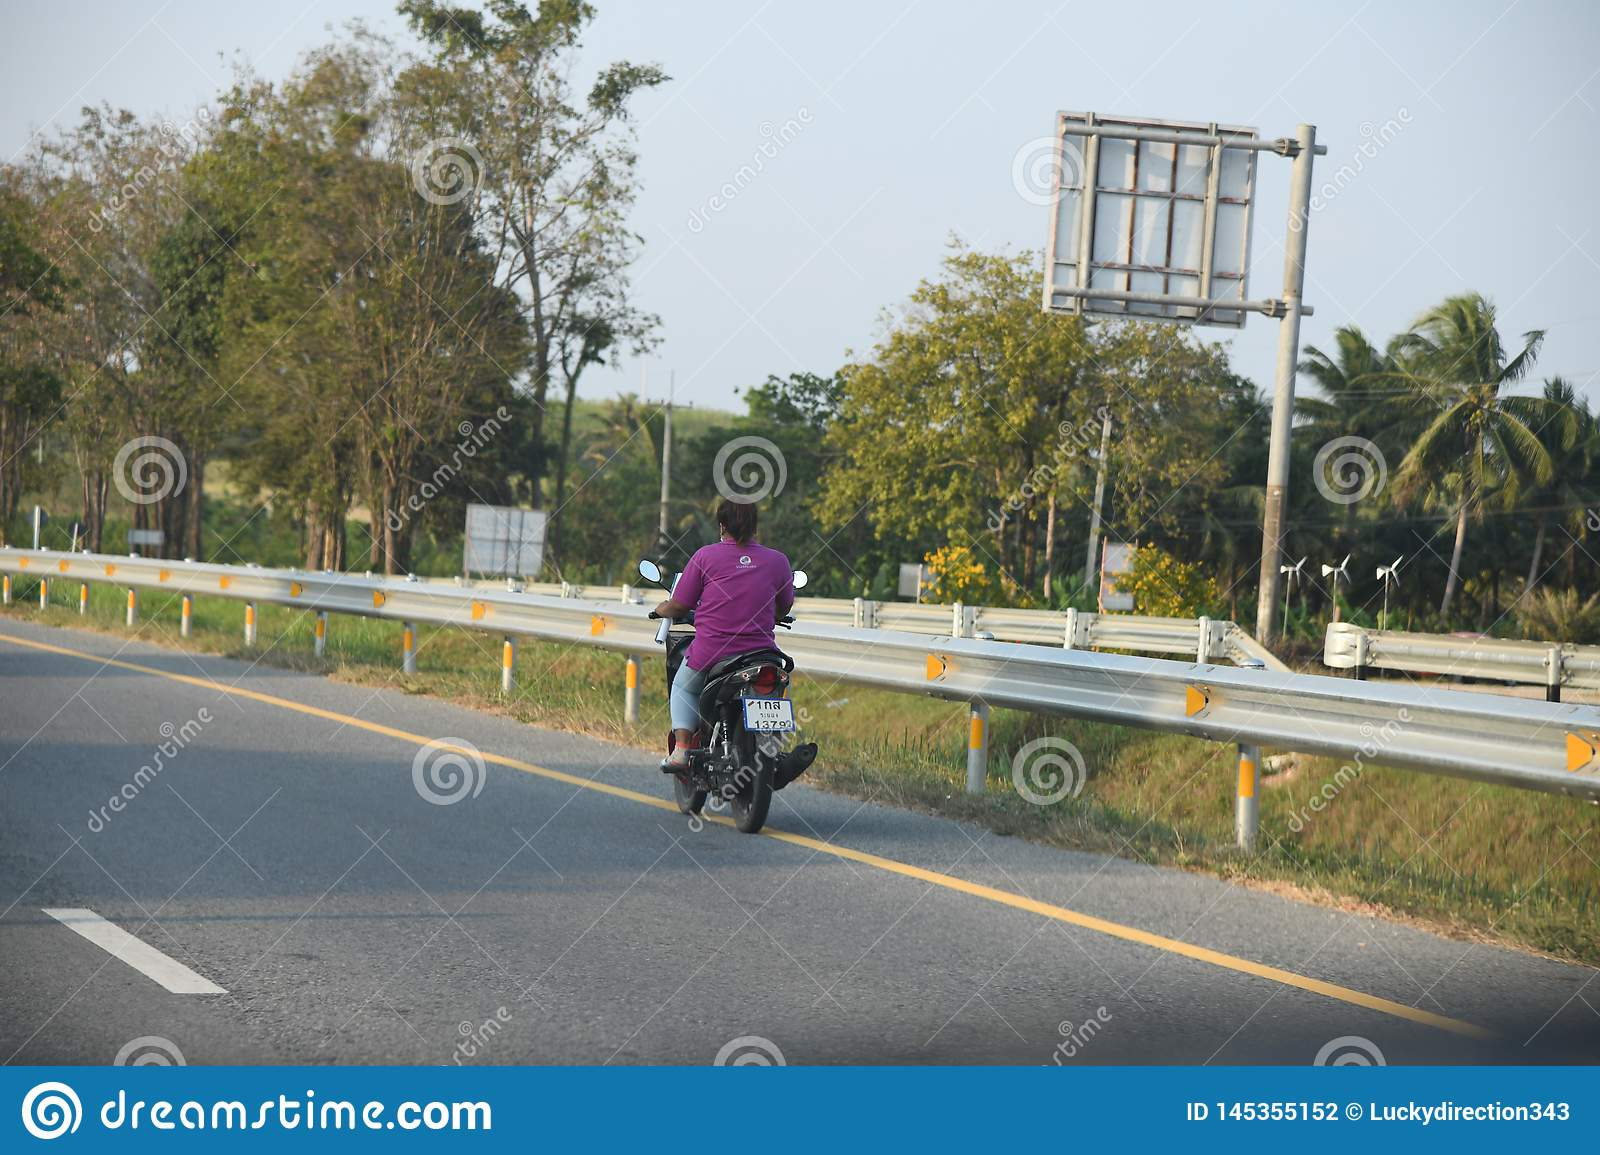 People cars bikes bangkok city highway roads. People cars bikes highway roads bangkok city ,thailand ,february 9th 2019 stock photography